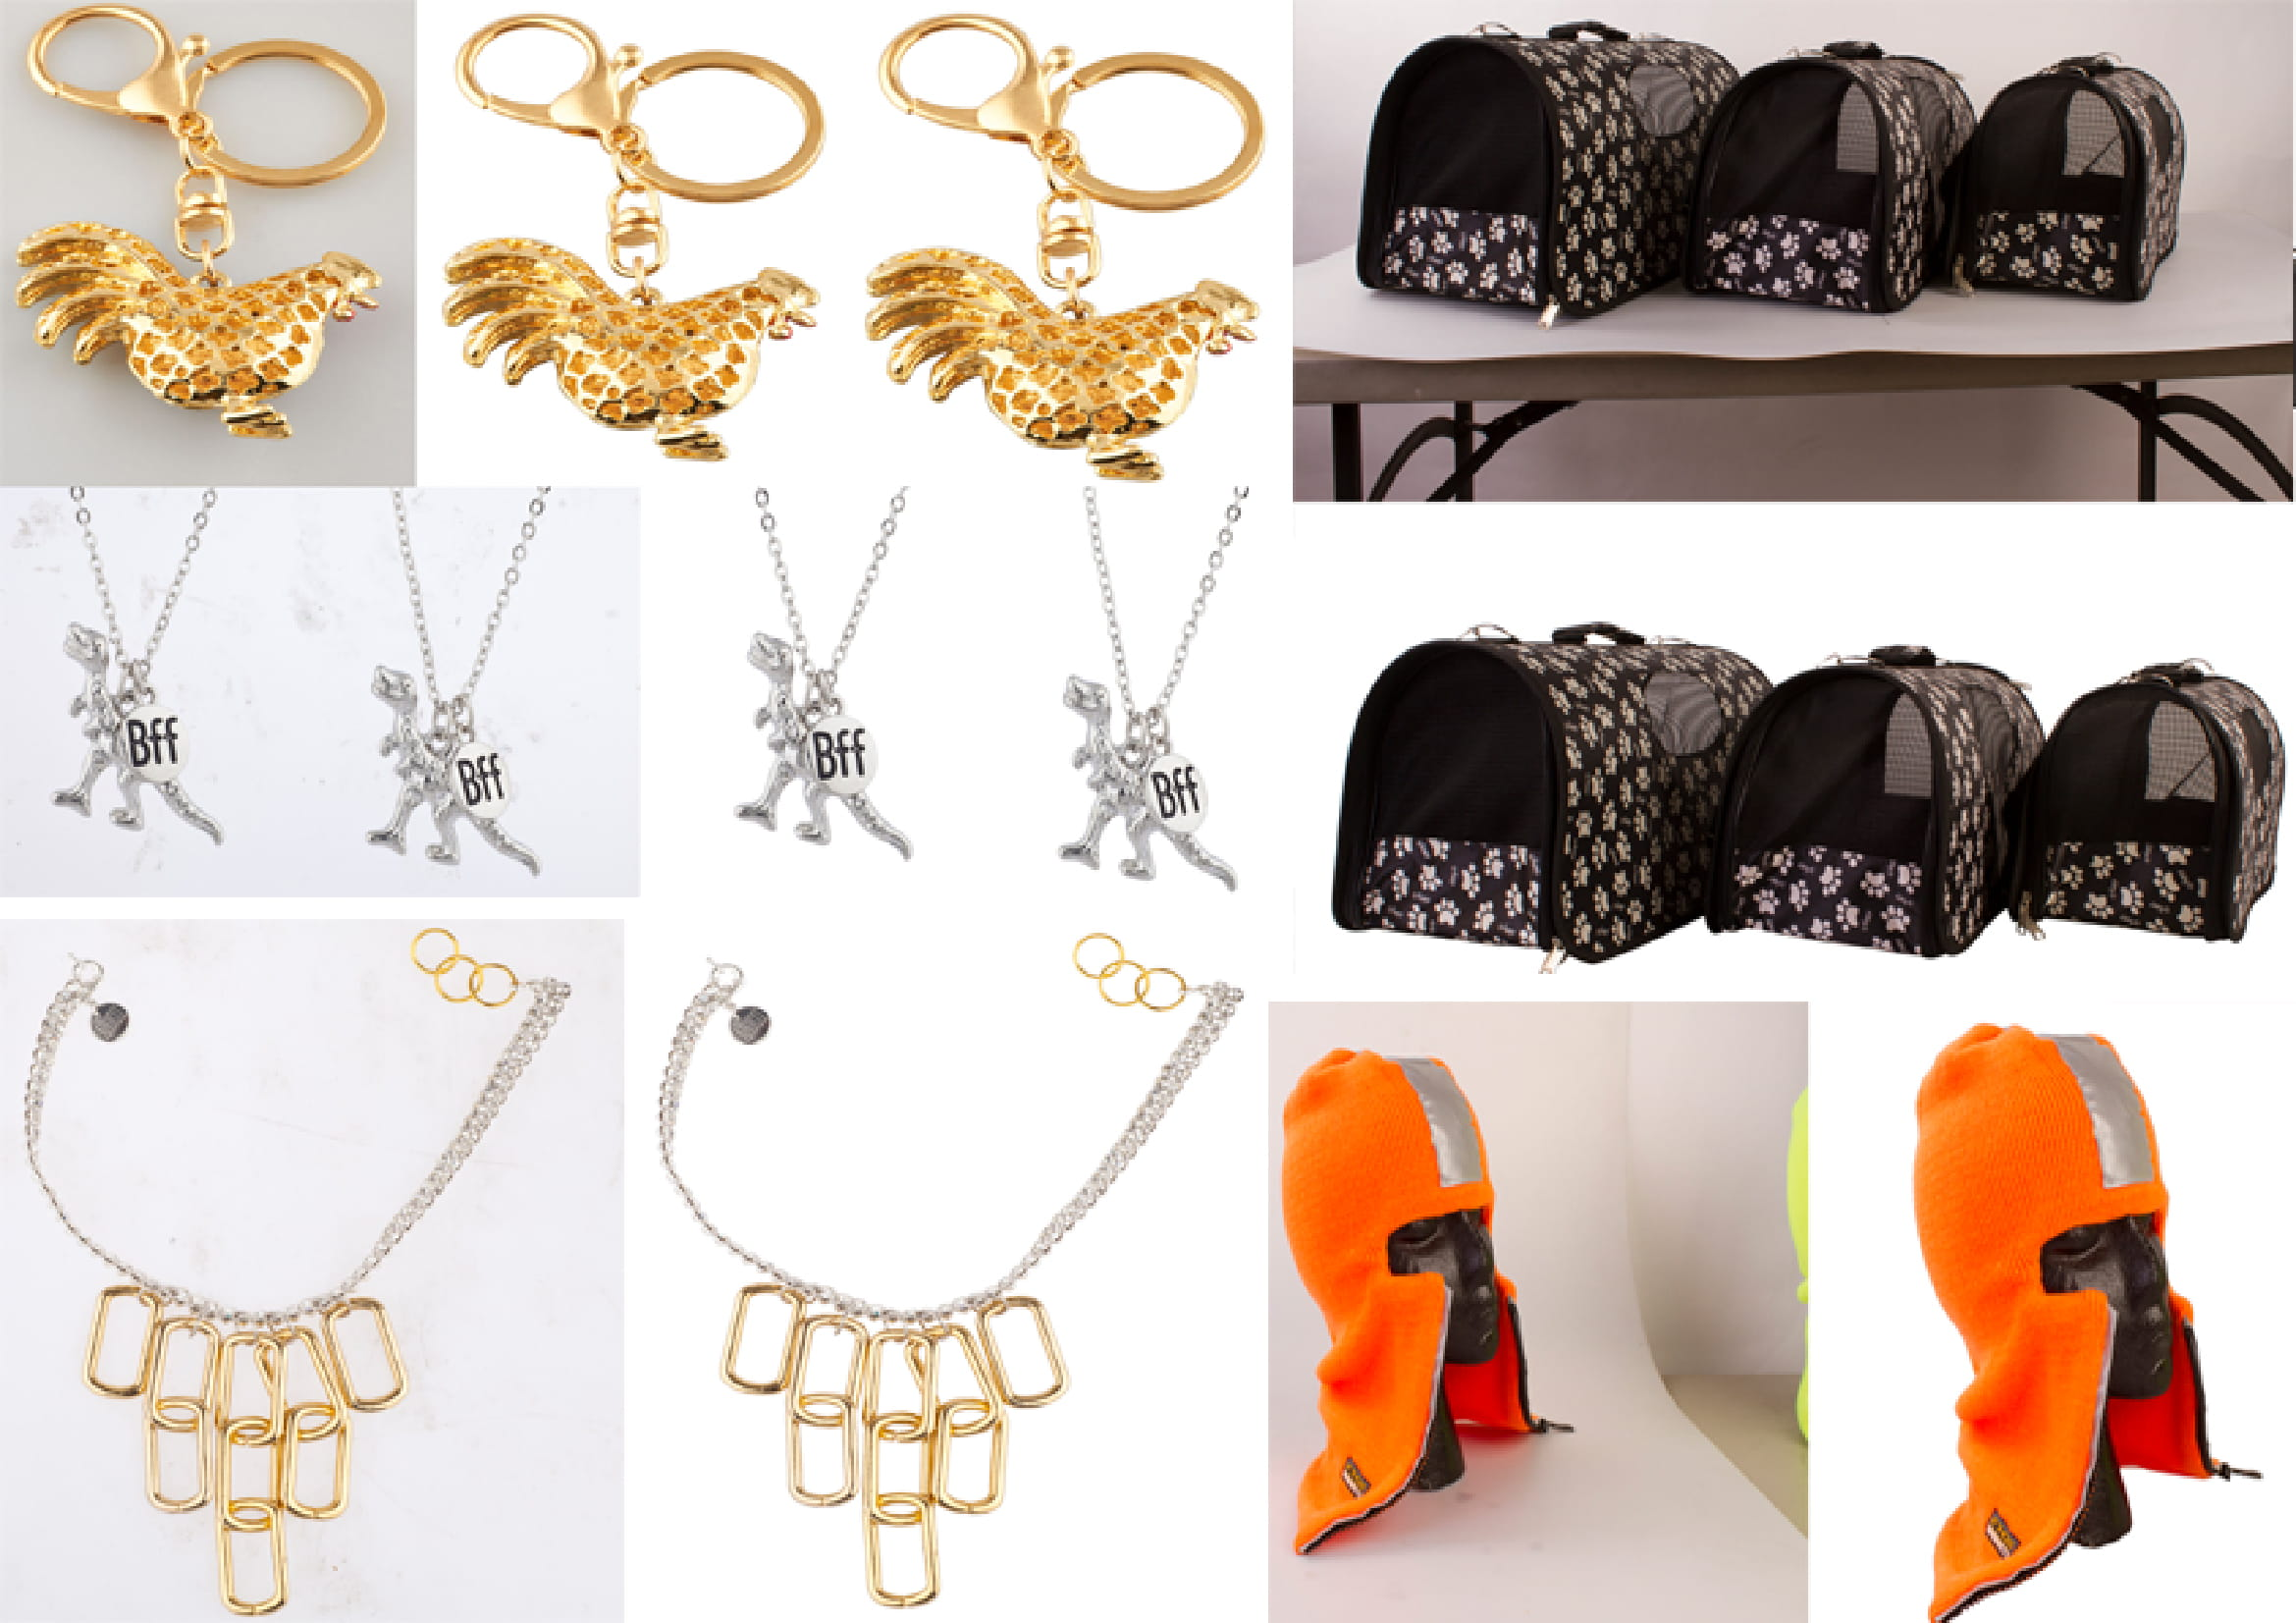 Remove Or Change Background Of 100 Jewelry Or Products. Remove or change background of any product.